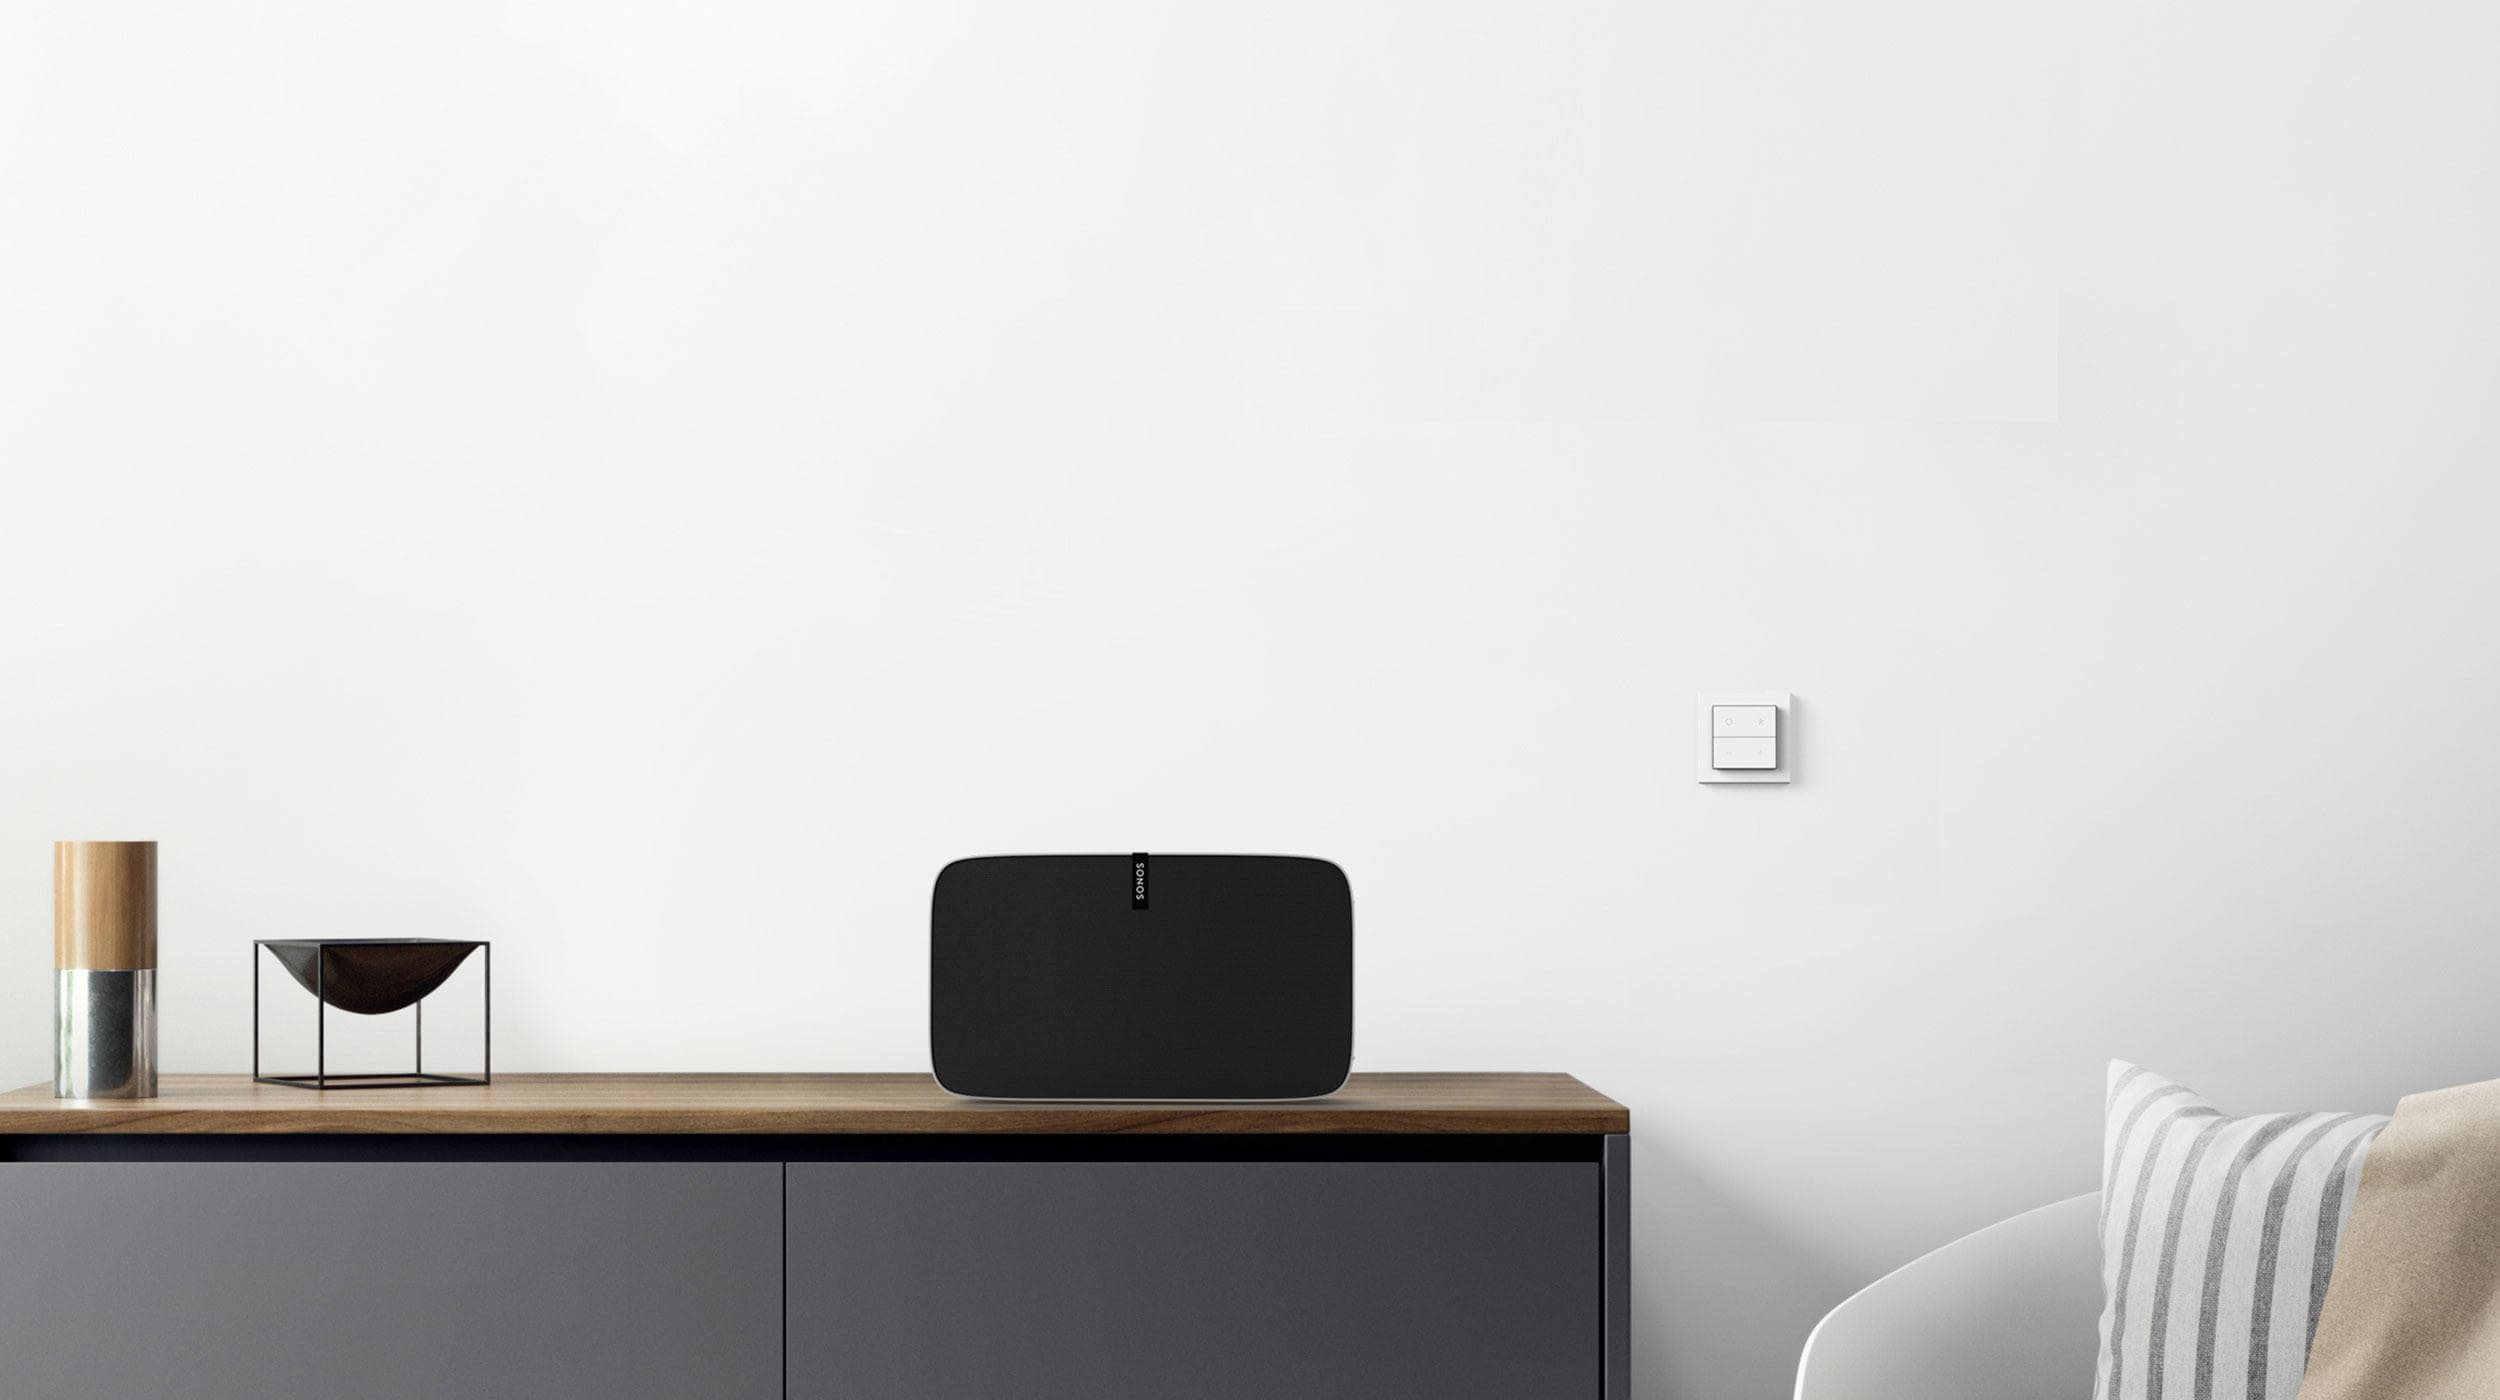 Nuimo Click Weiß fixed on a Weiß wall in a sophisticated living room next to a Sonos speaker and stylish furniture